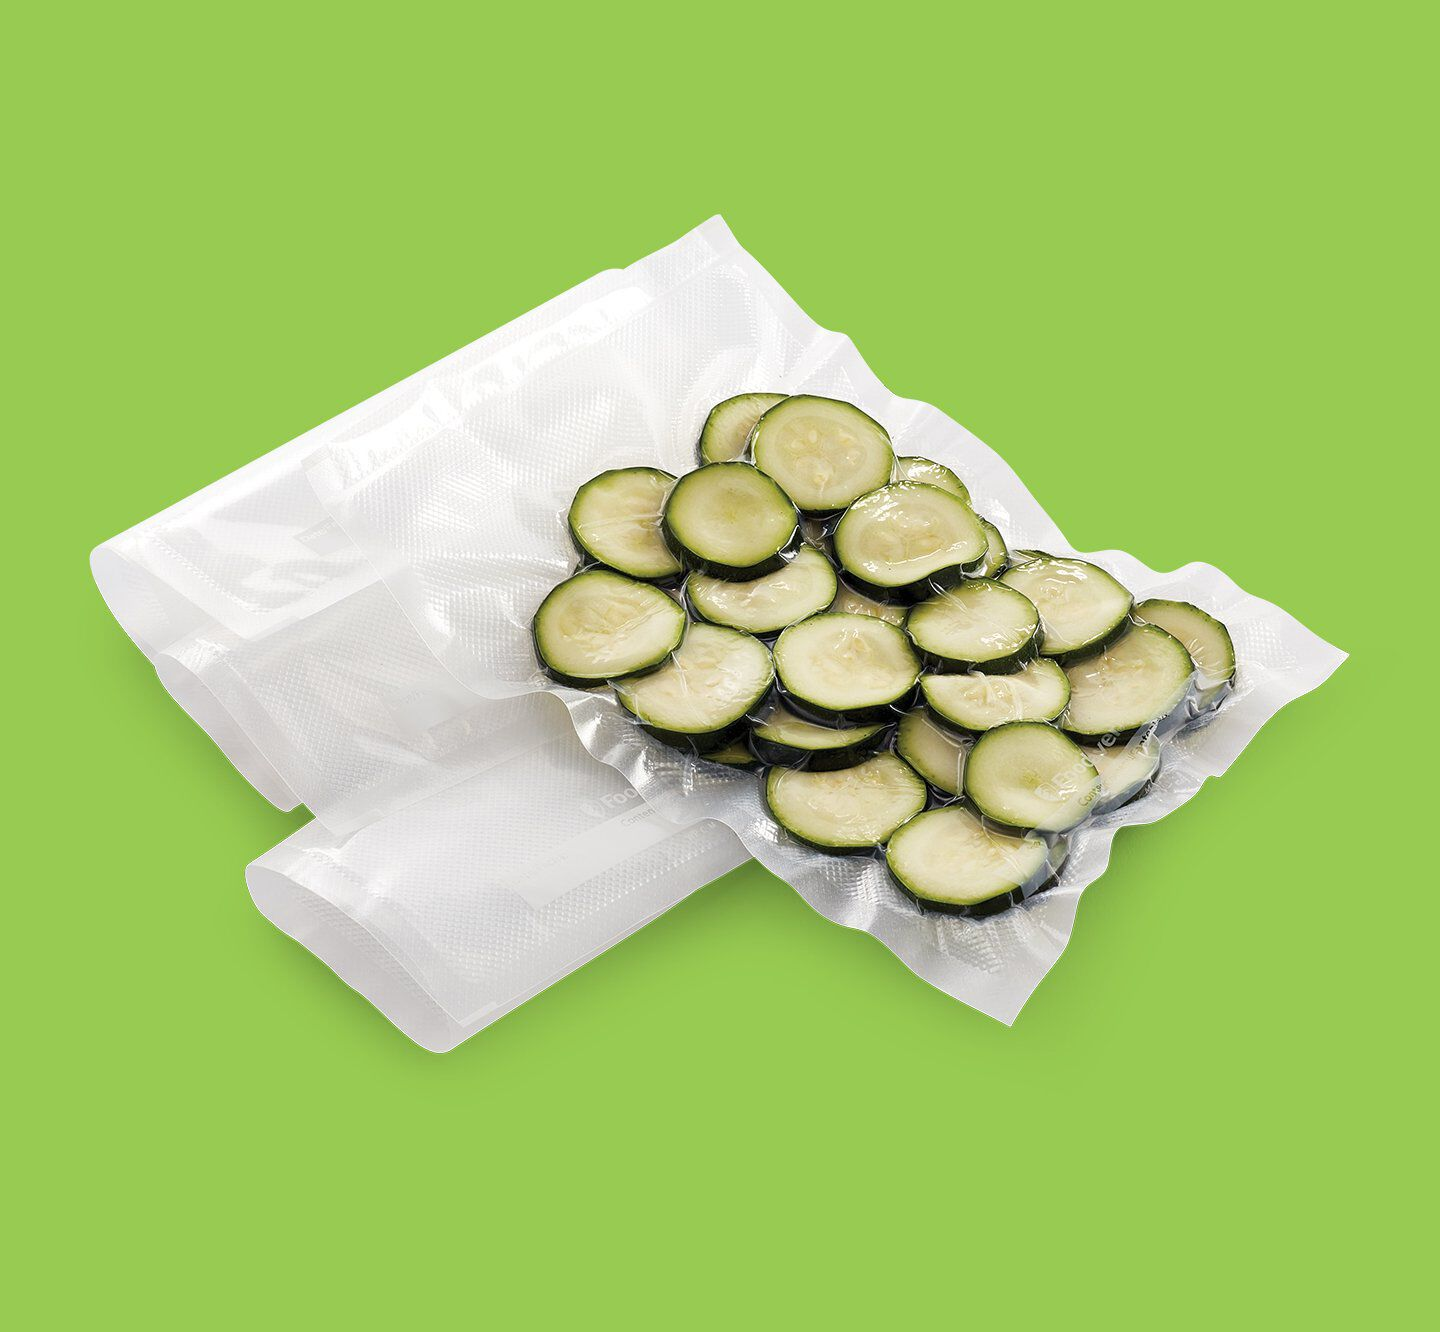 FoodSaver Bags Perform Better